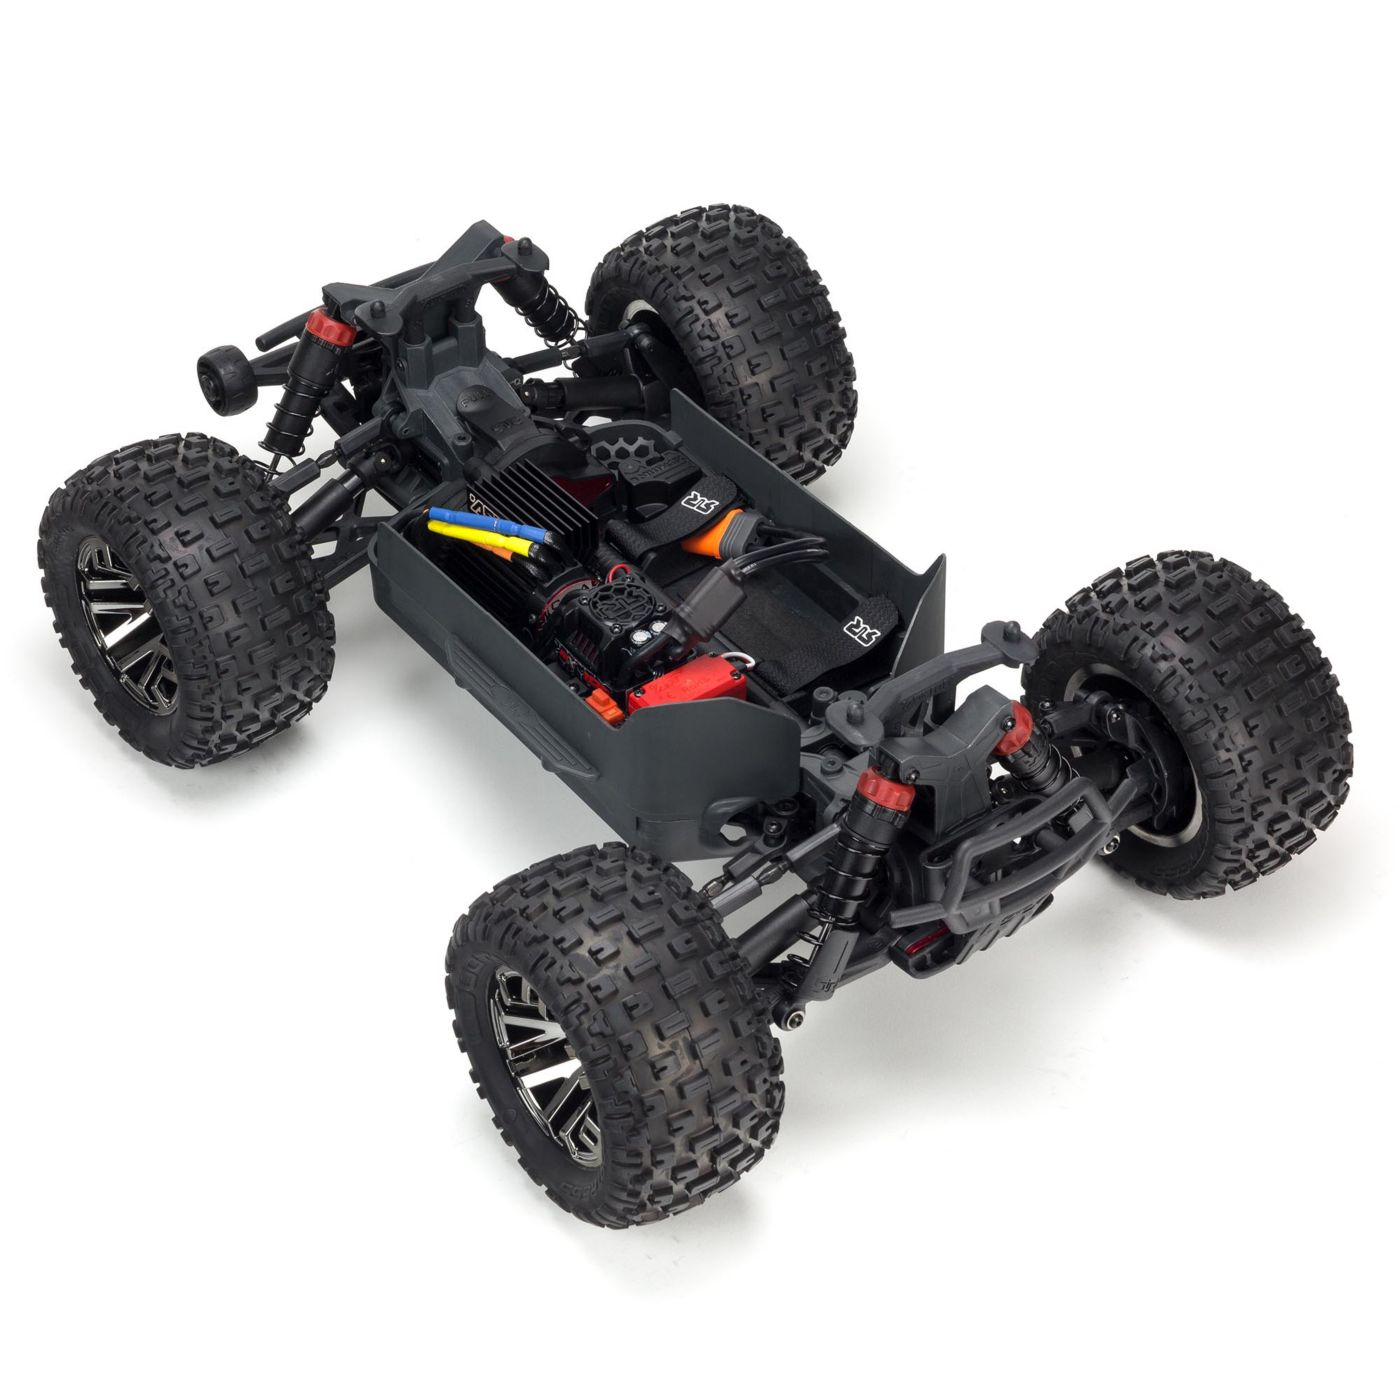 Arrma Granite 3S 4x4 Brushless BLX RTR 2